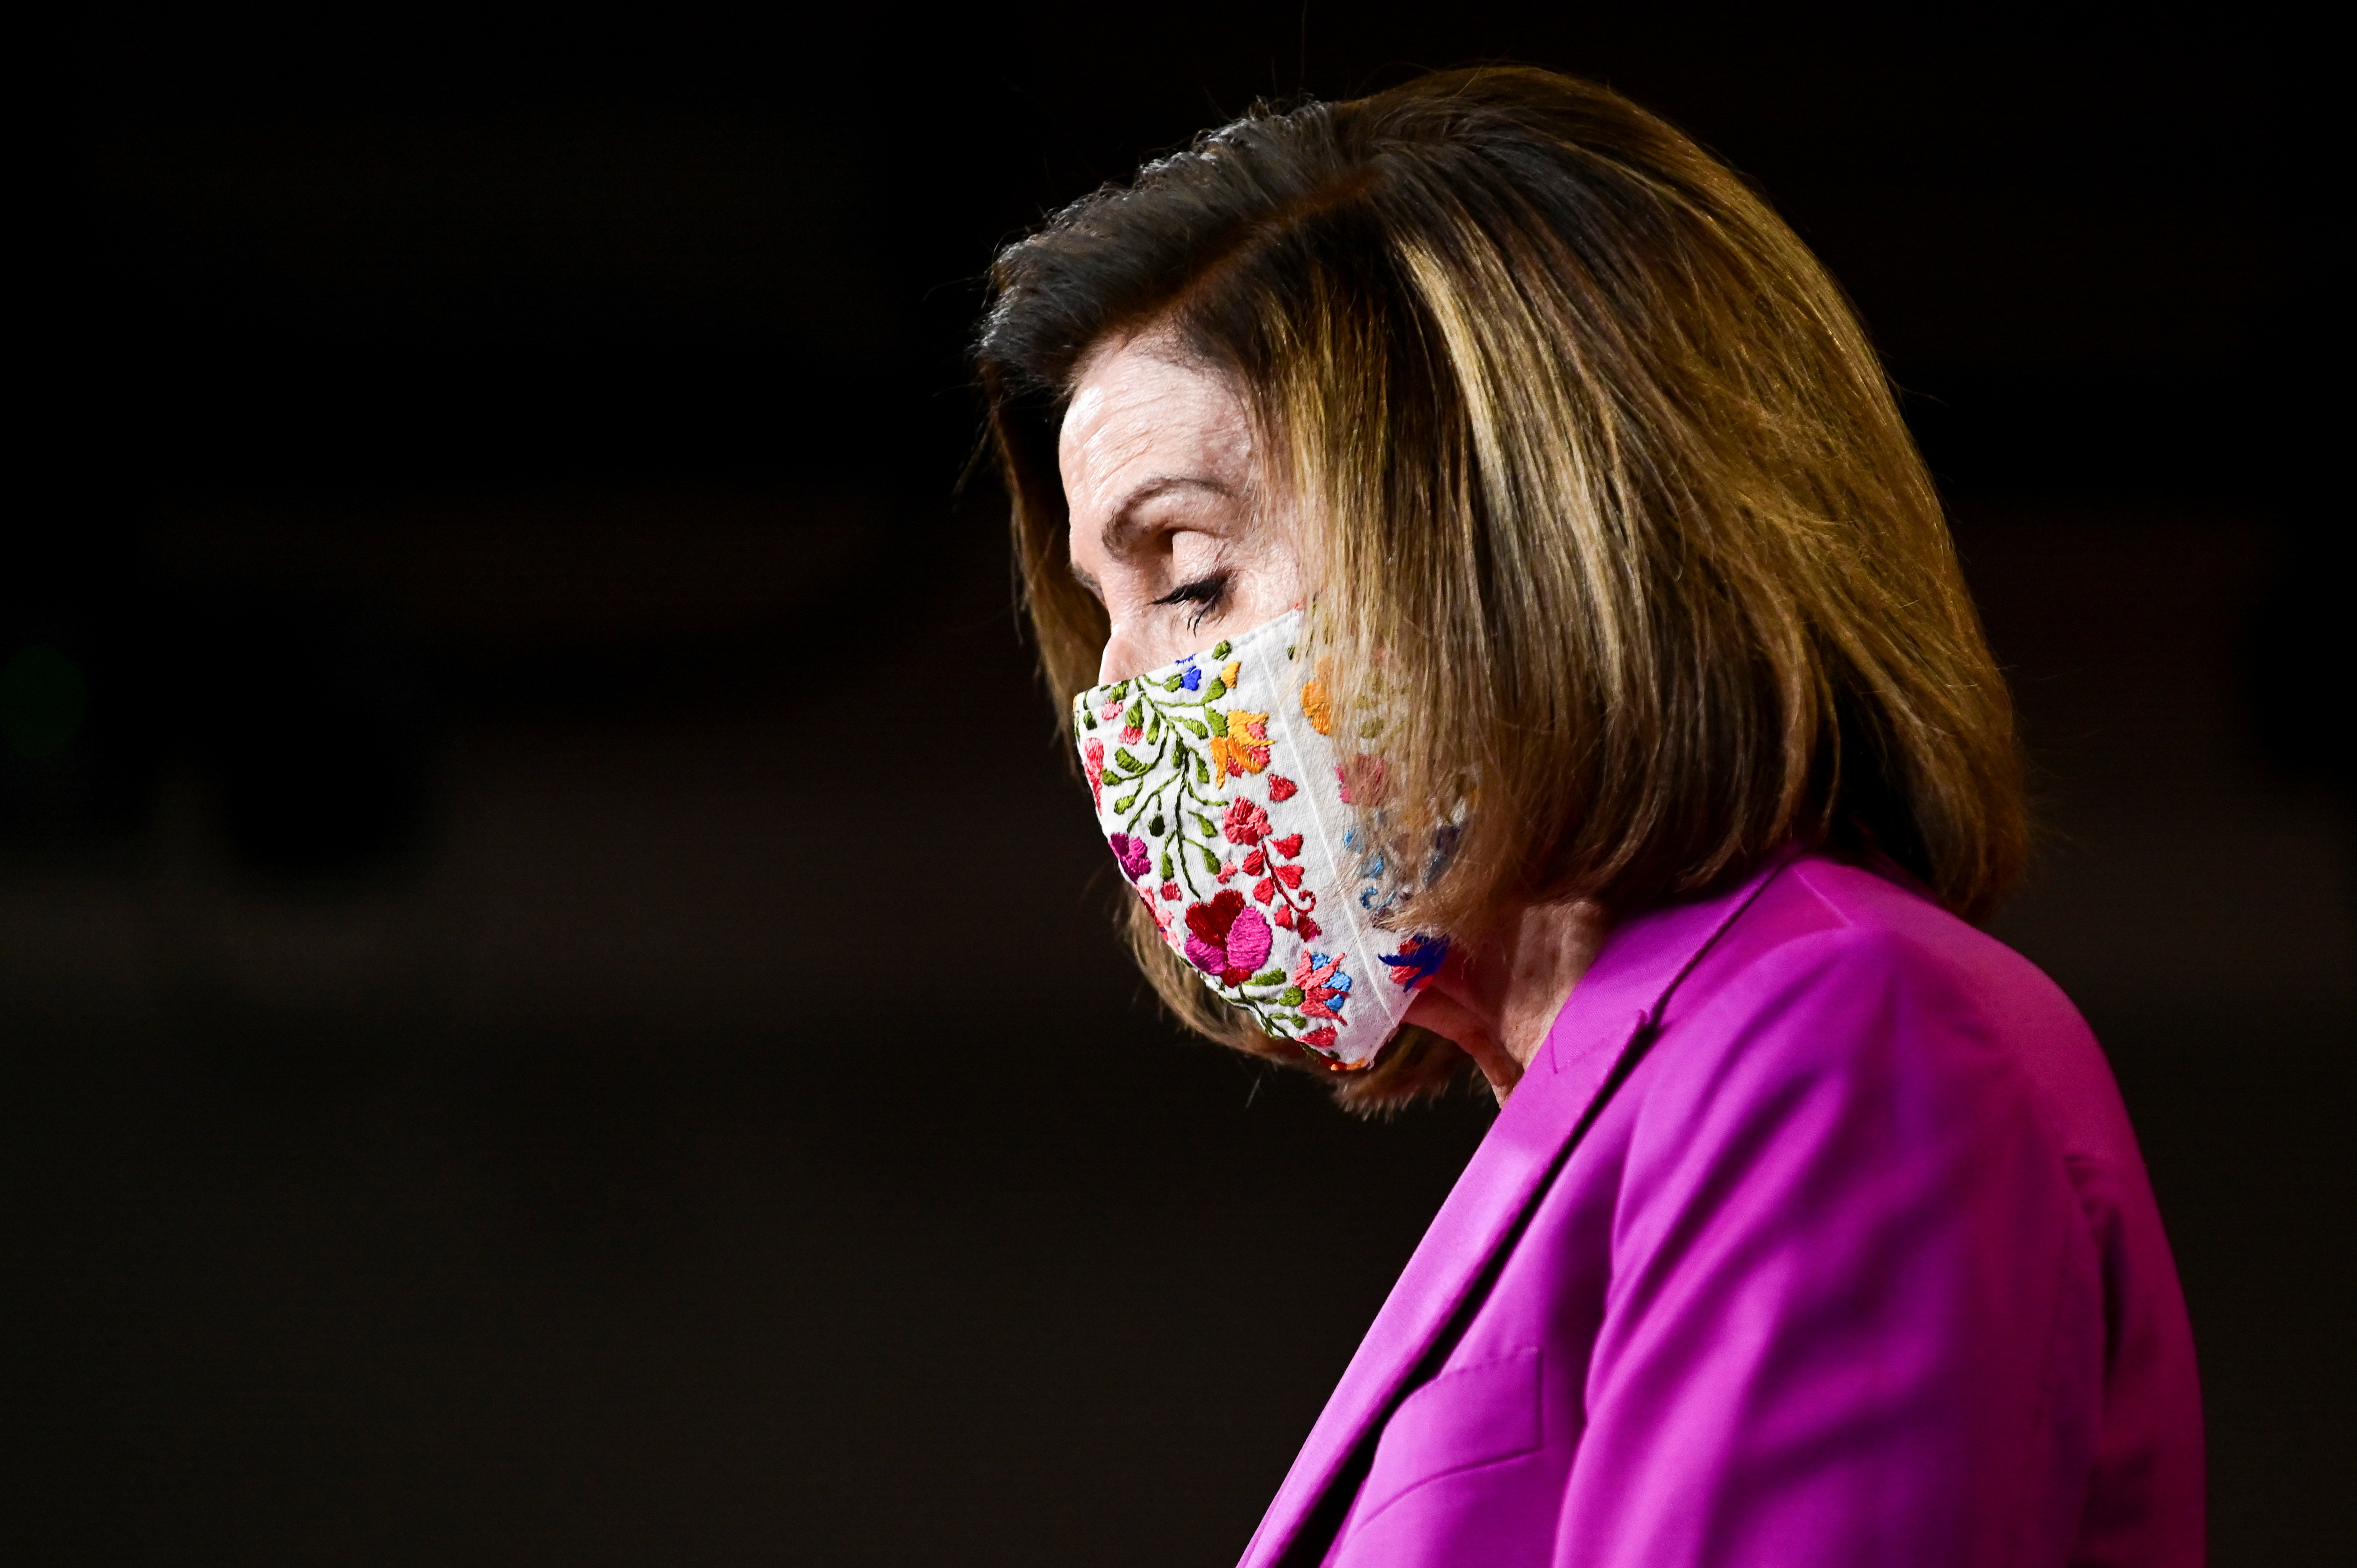 U.S. House Speaker Nancy Pelosi (D-CA) speaks to reporters a day after supporters of U.S. President Donald Trump occupied the Capitol, during a news conference in Washington, U.S., January 7, 2021. REUTERS/Erin Scott